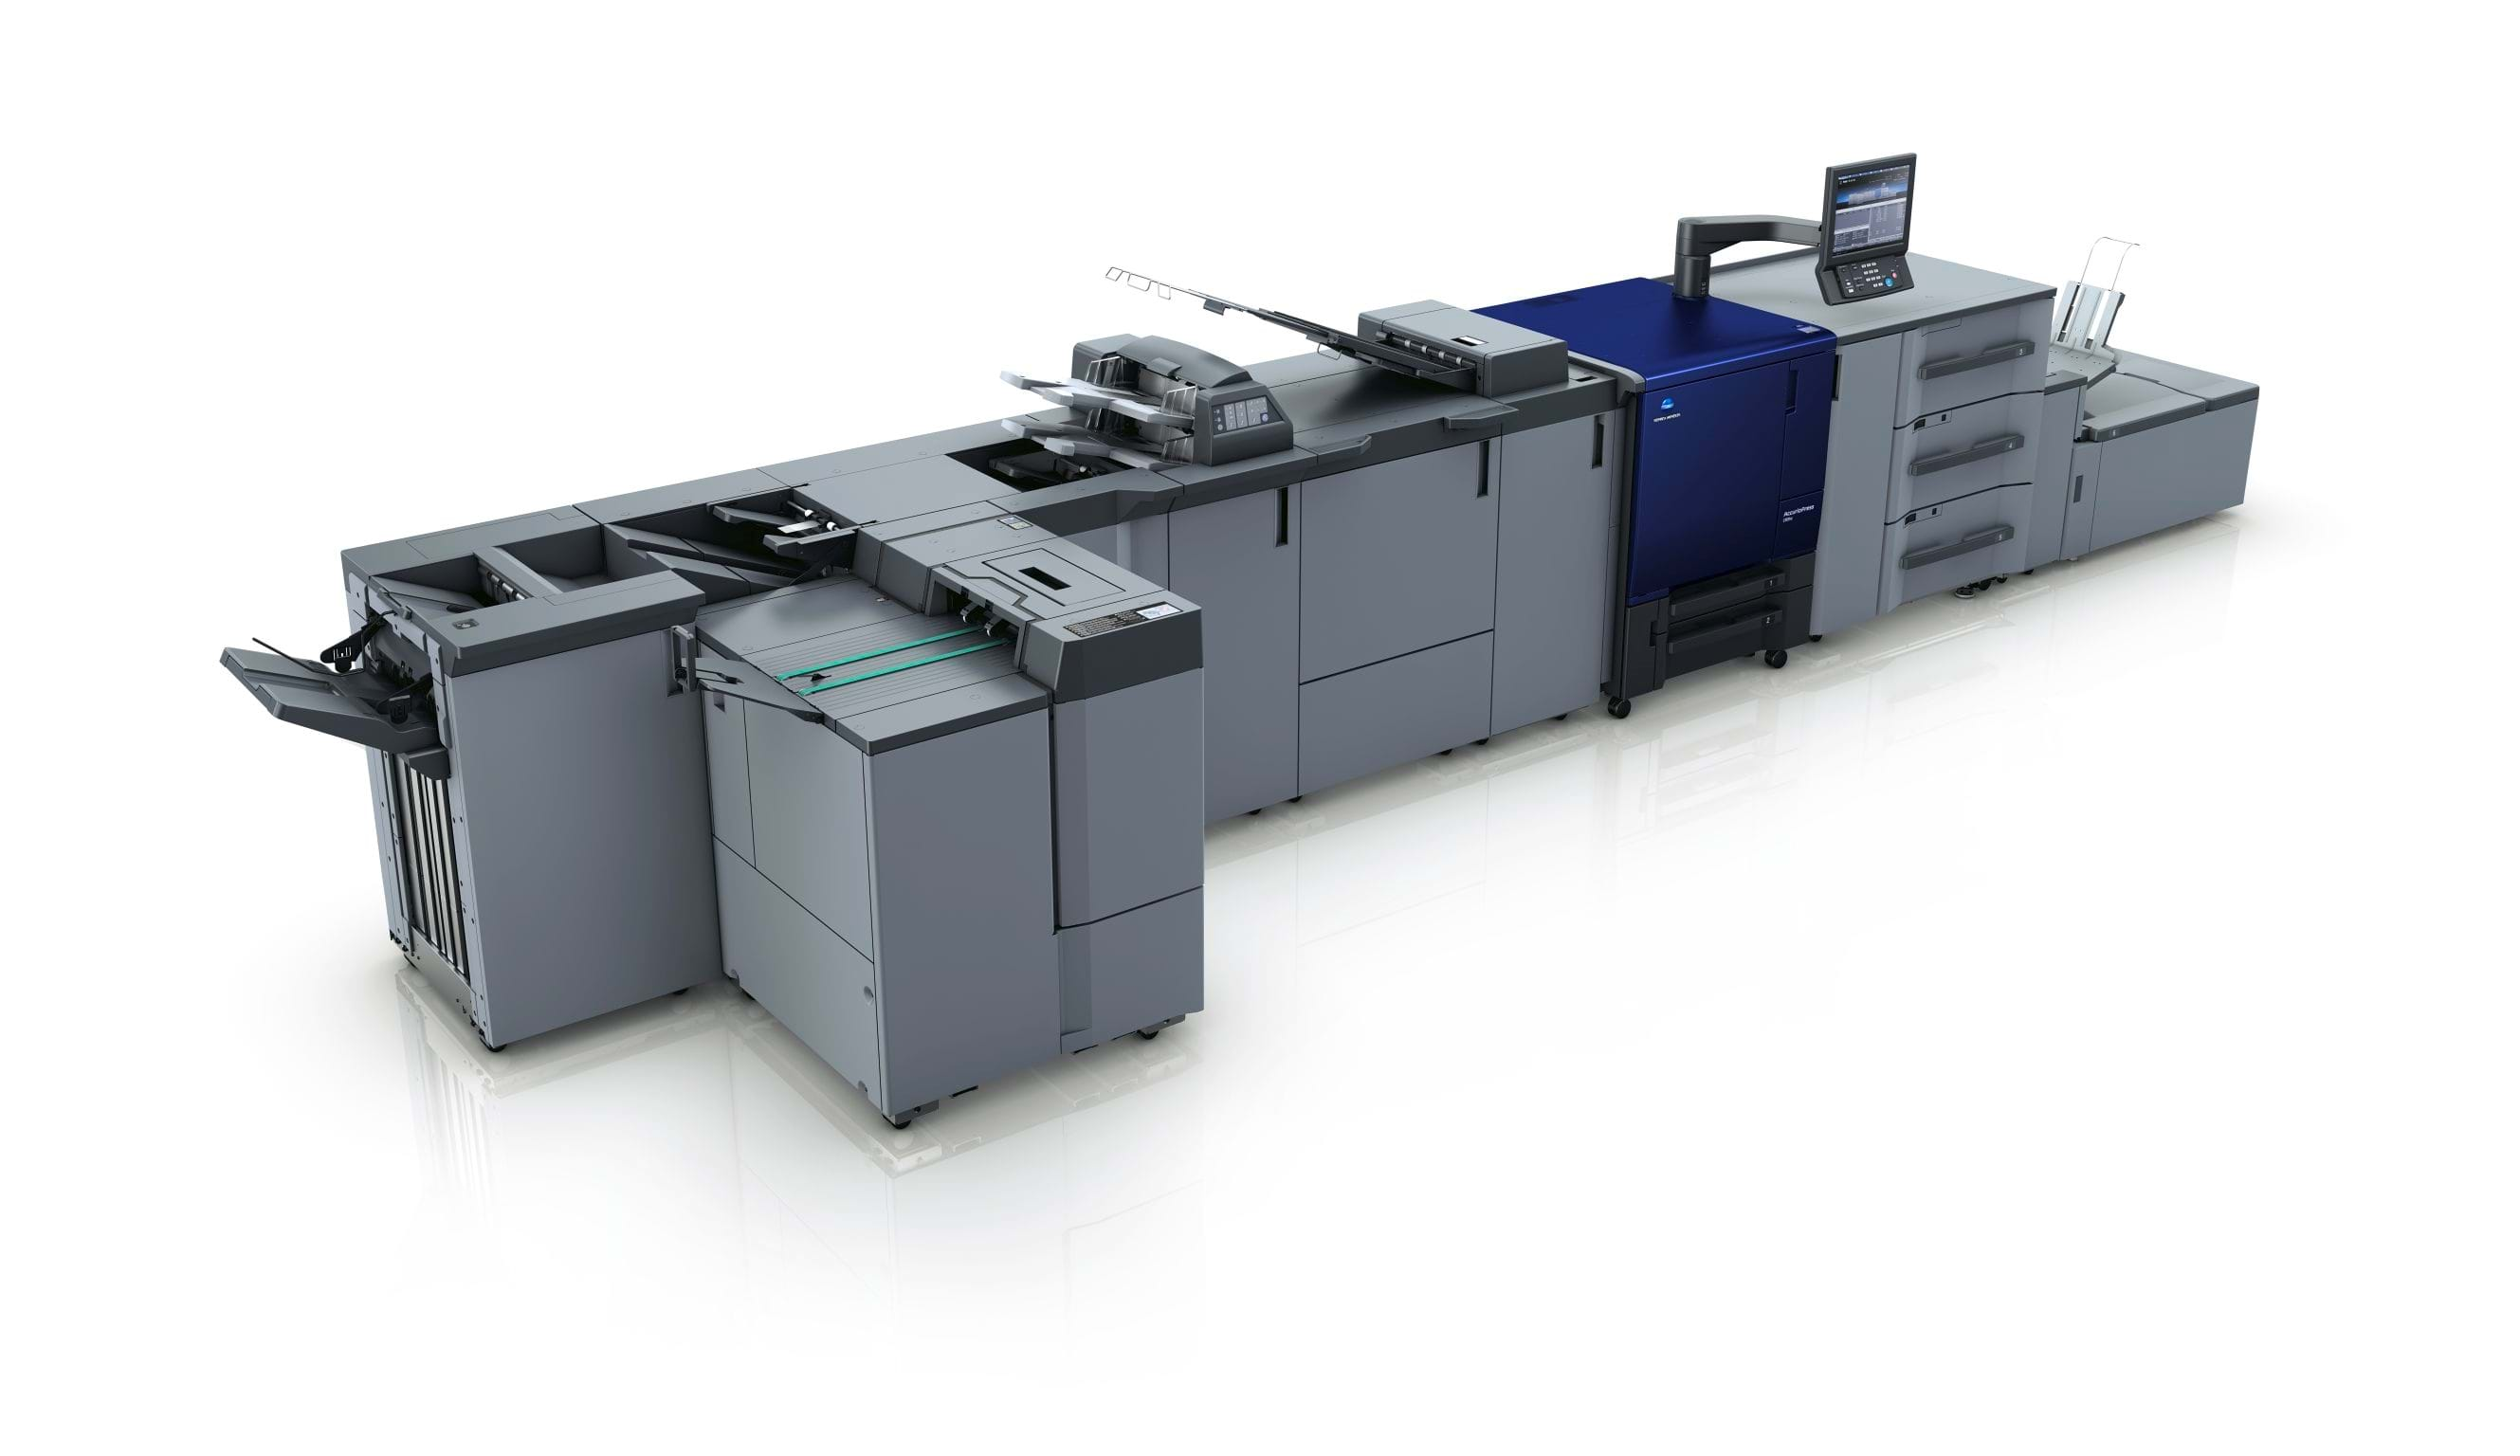 Konica Minolta accurioPress c83hc professional printer